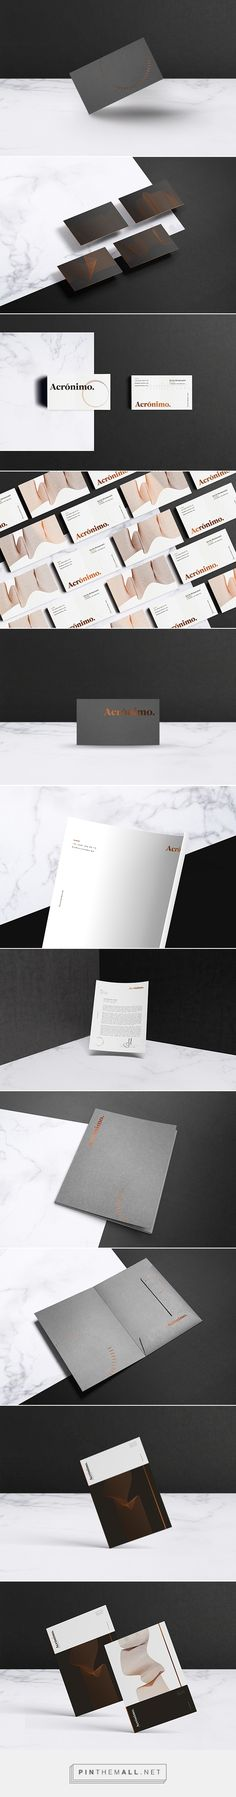 Acrónimo. on Branding Served - created via https://pinthemall.net